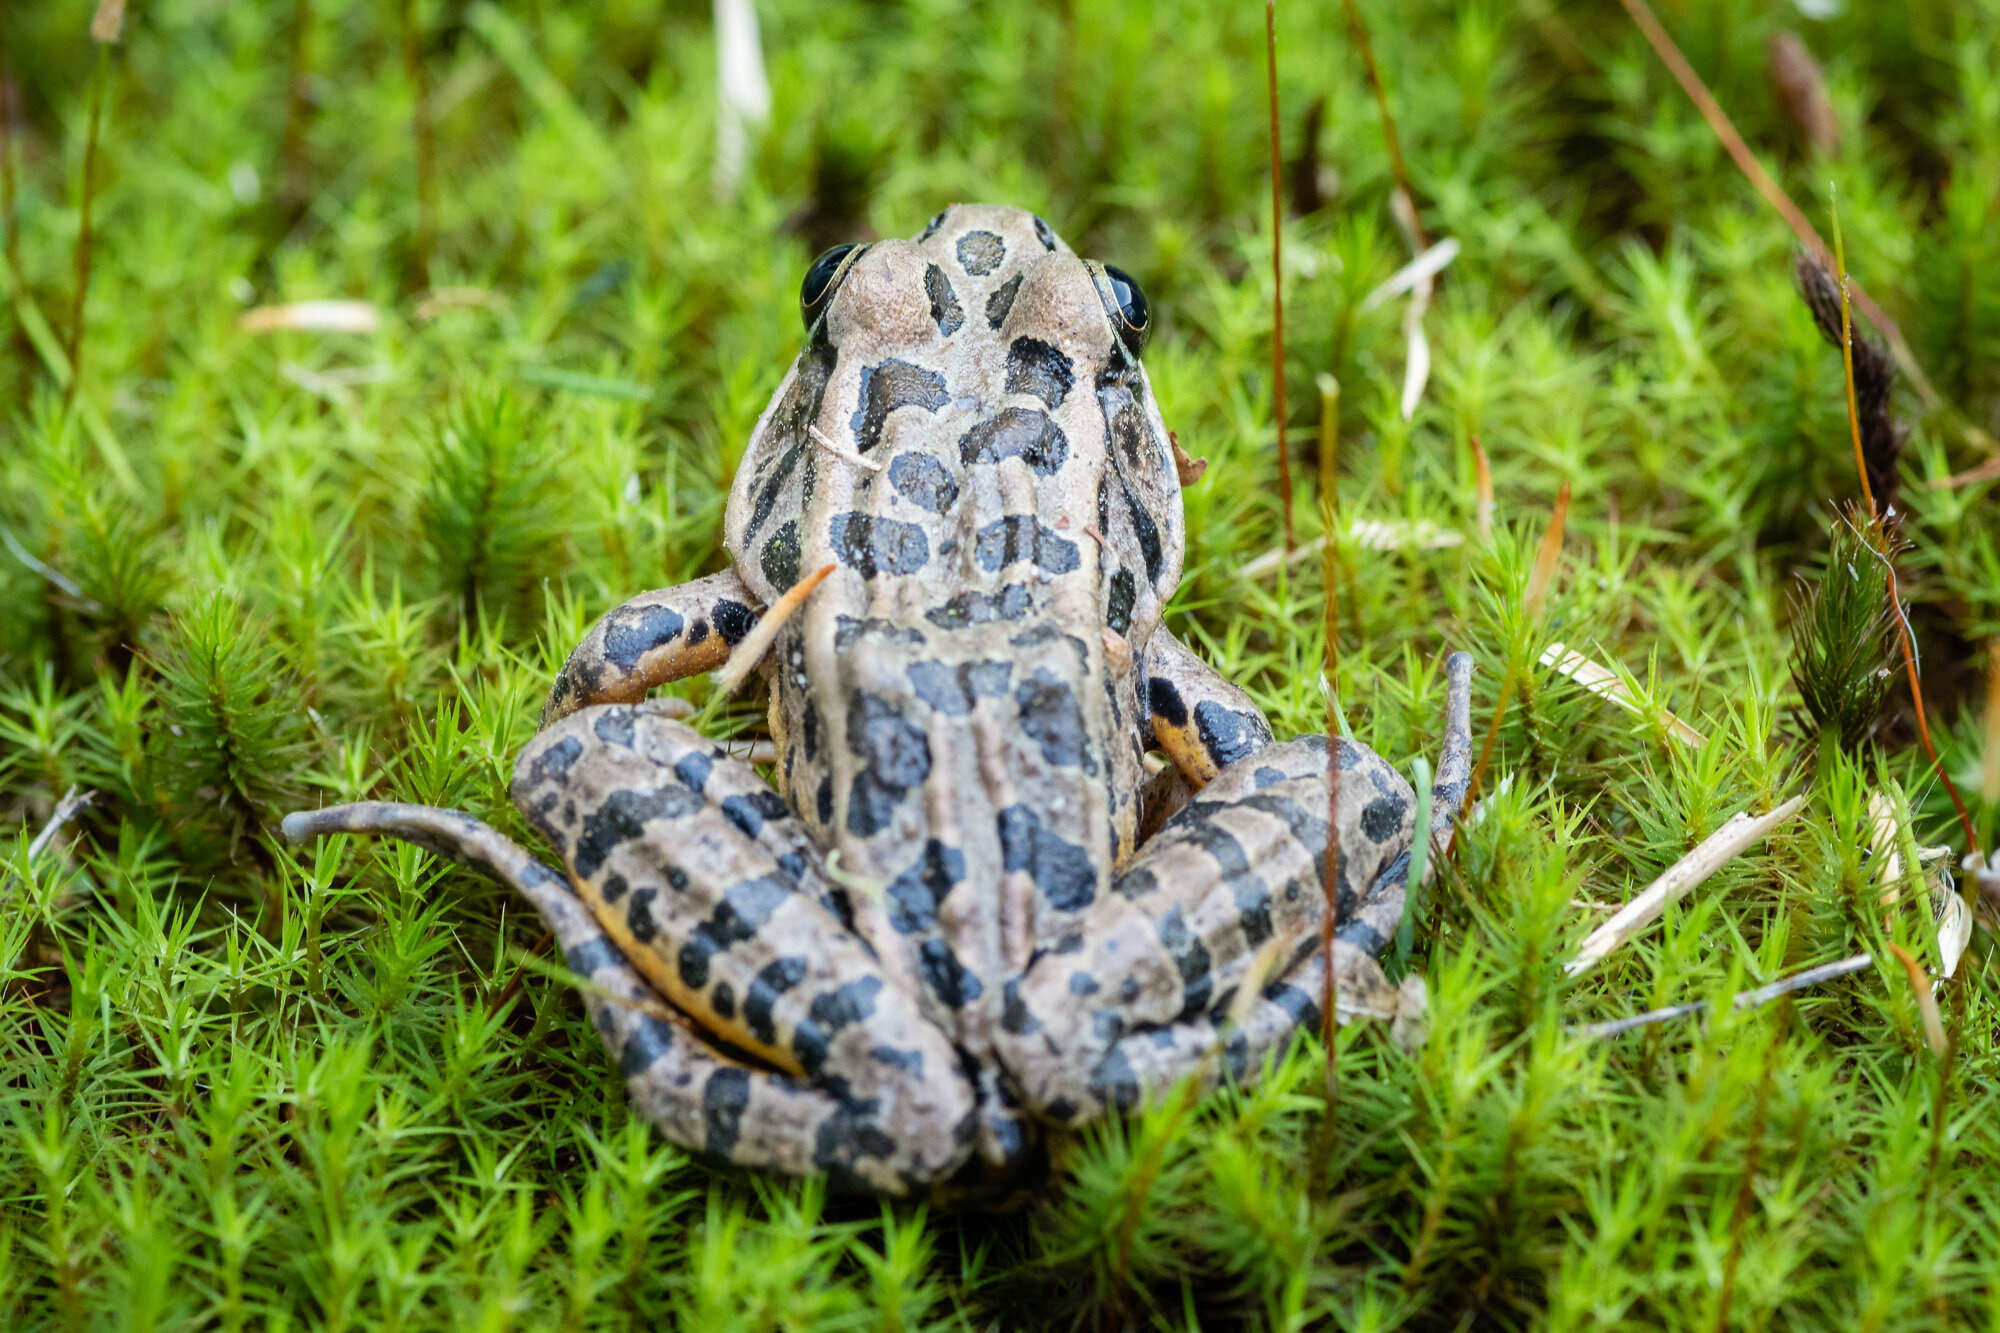 Viewing the Pickerel Frog from behind. You can see some of the yellow/orange of its underside and the squarish shapes along its back.